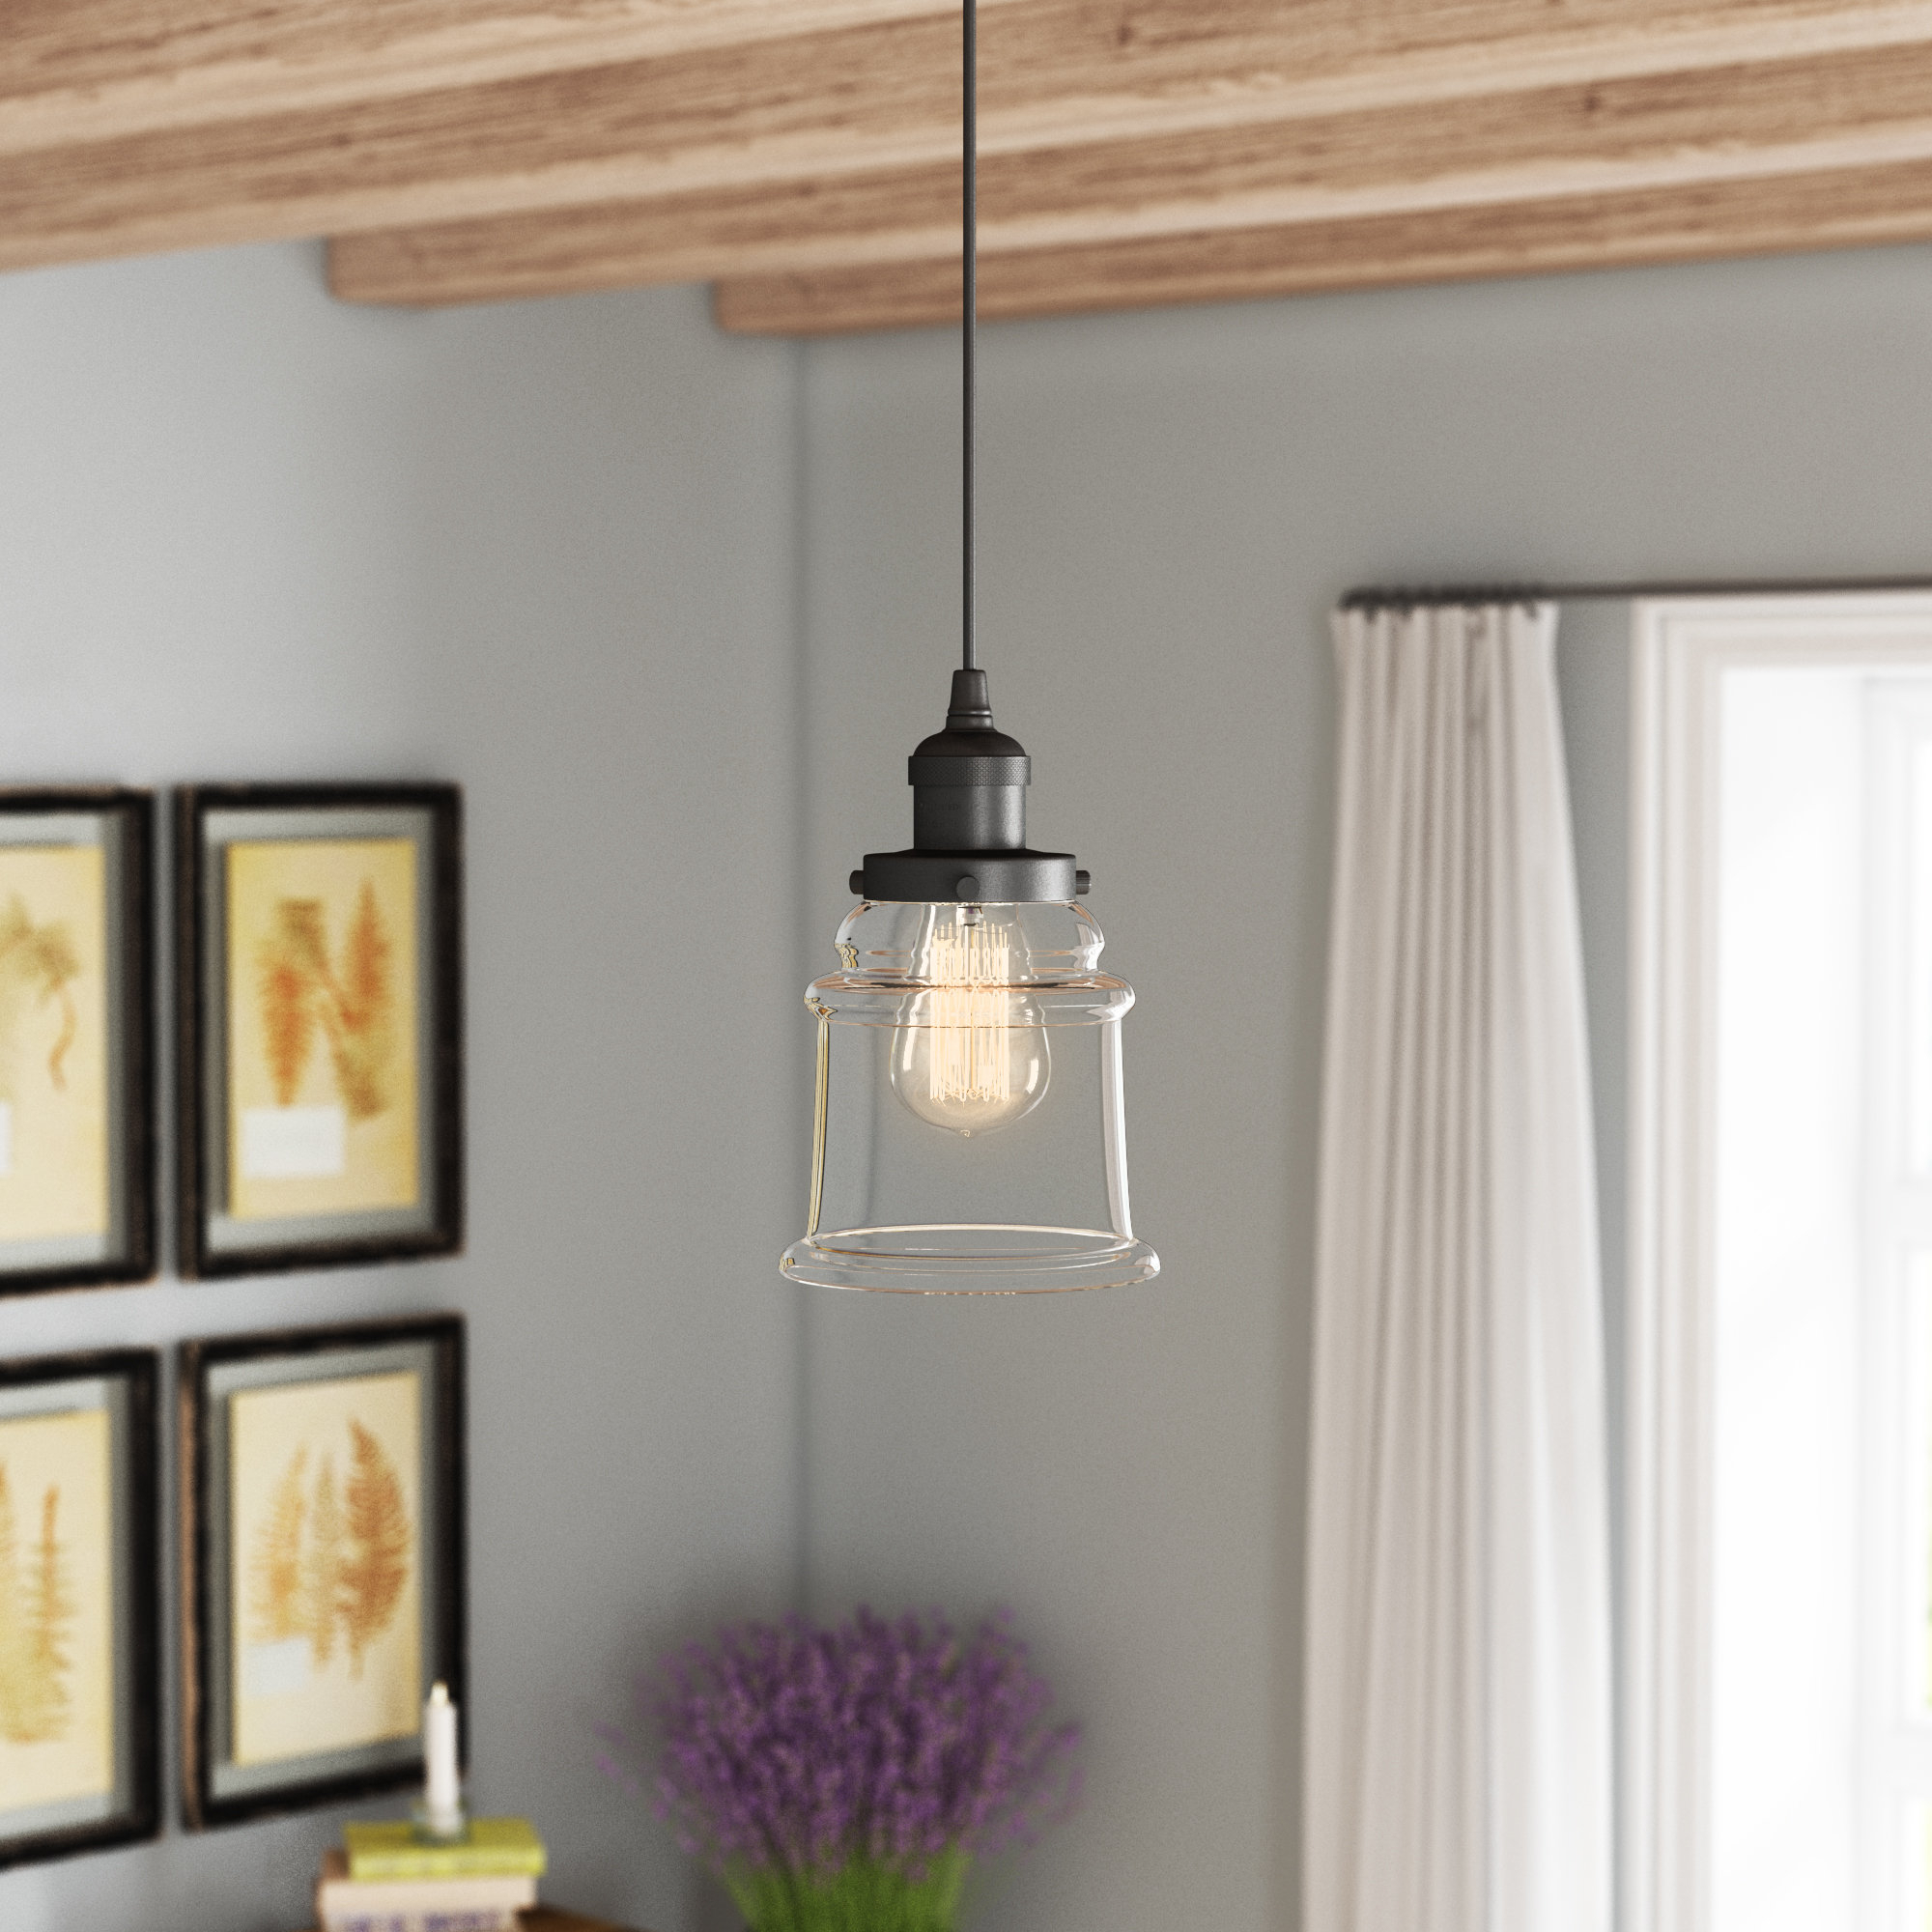 Greeley 1 Light Single Bell Pendant For Sargent 1 Light Single Bell Pendants (View 13 of 30)